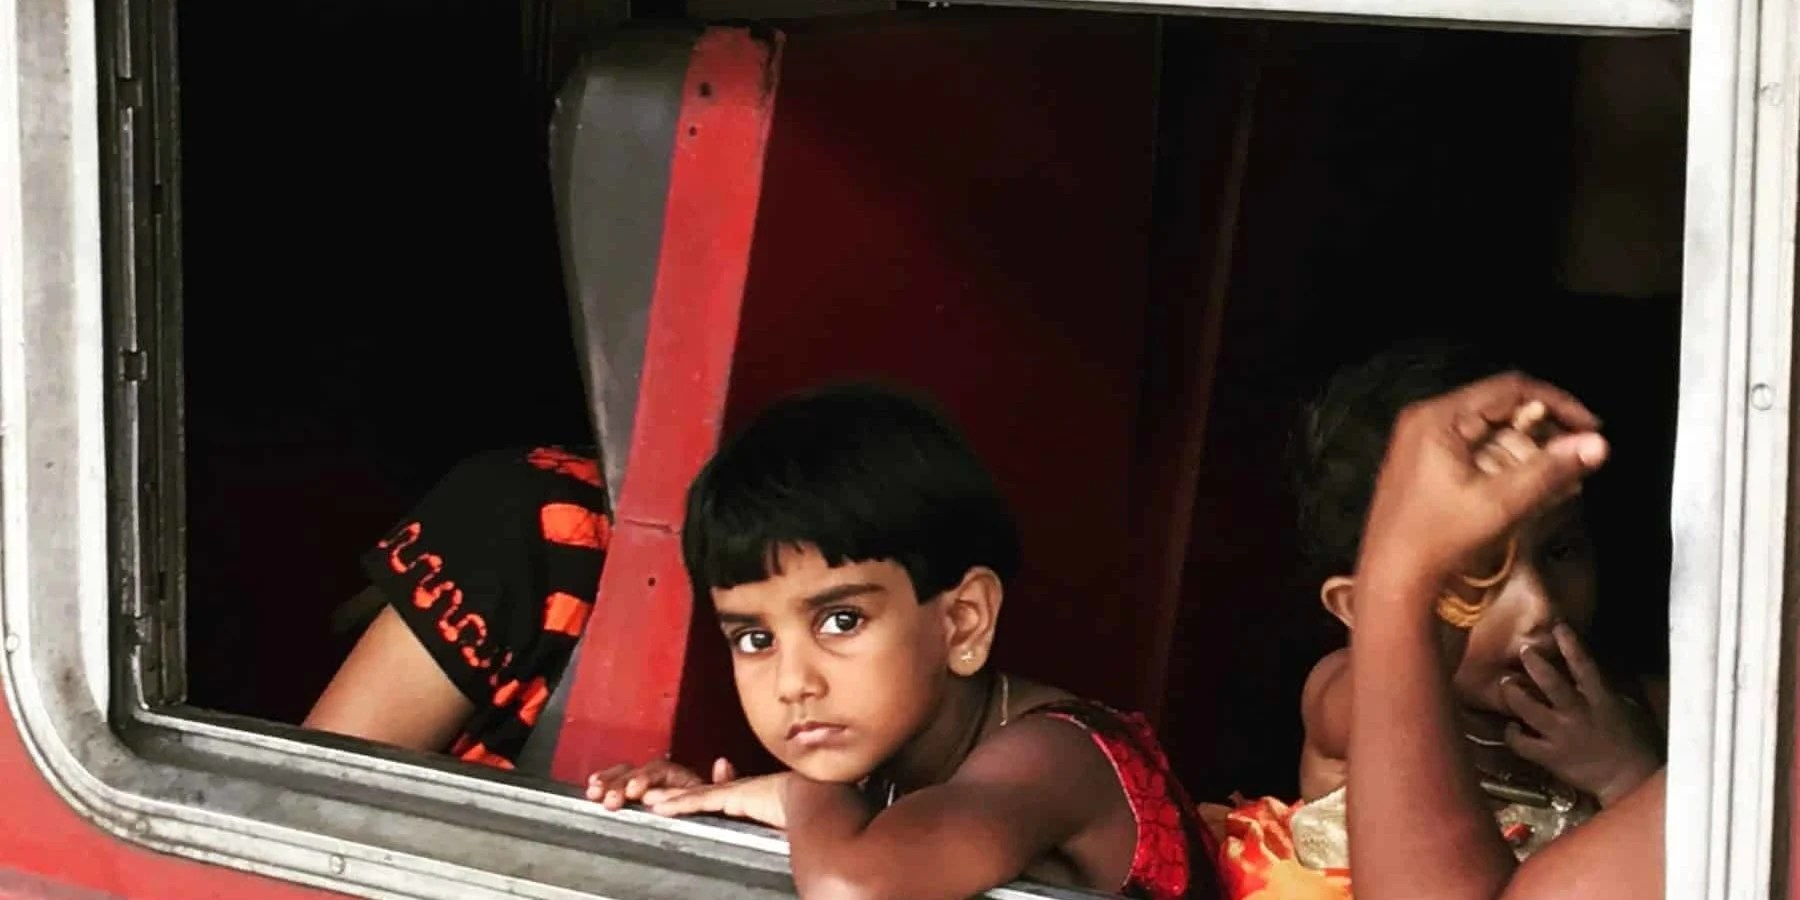 Child on train in India